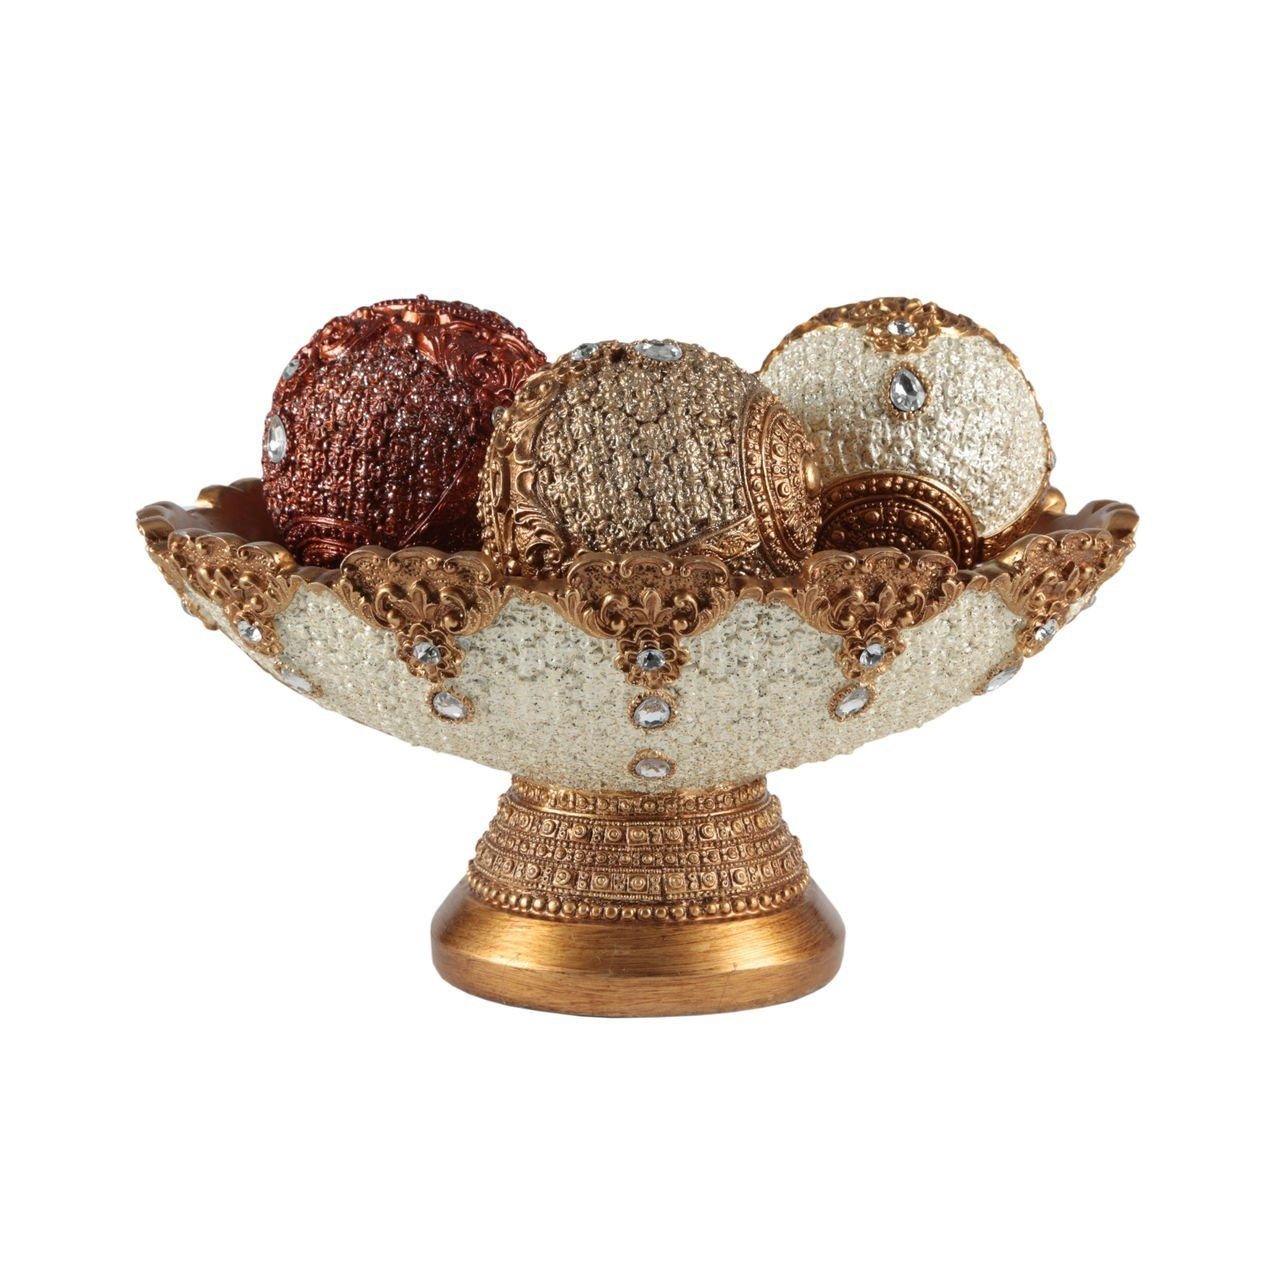 Decorative Bowl With Balls Eyecatching Decorative Bowl And Orb Set Includes Three Balls